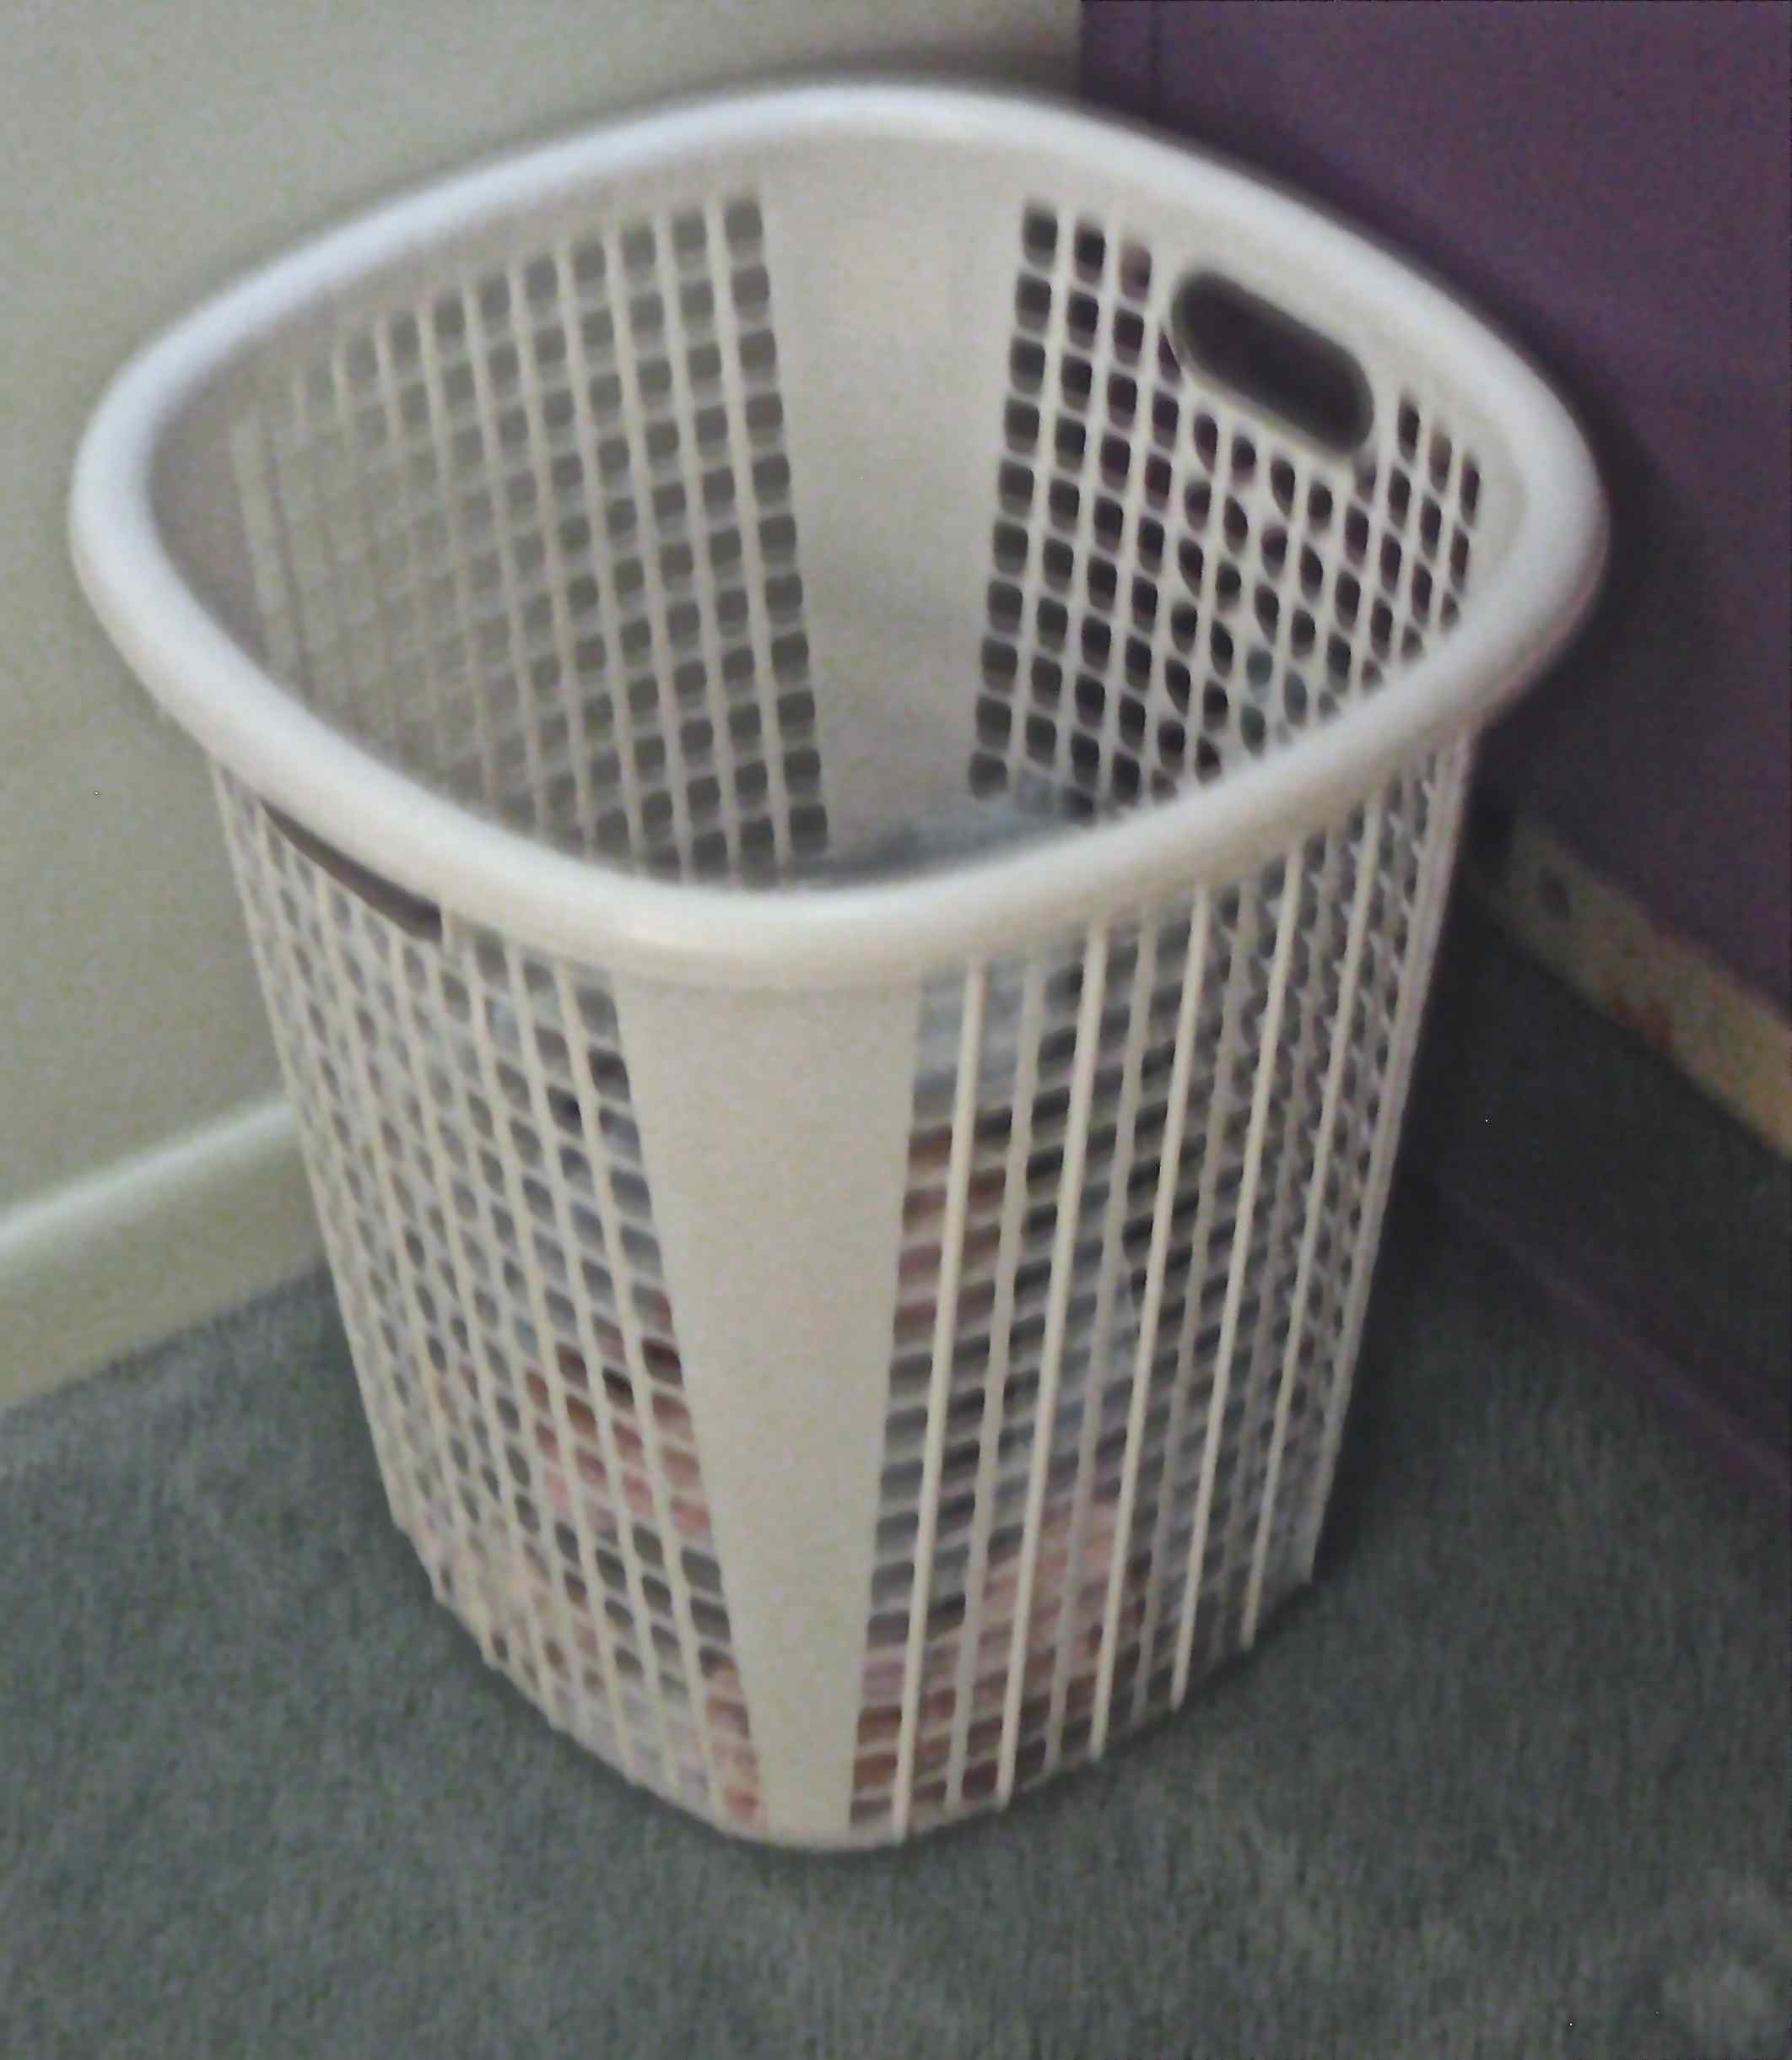 Dirty Laundry Baskets The Efficient Laundry System